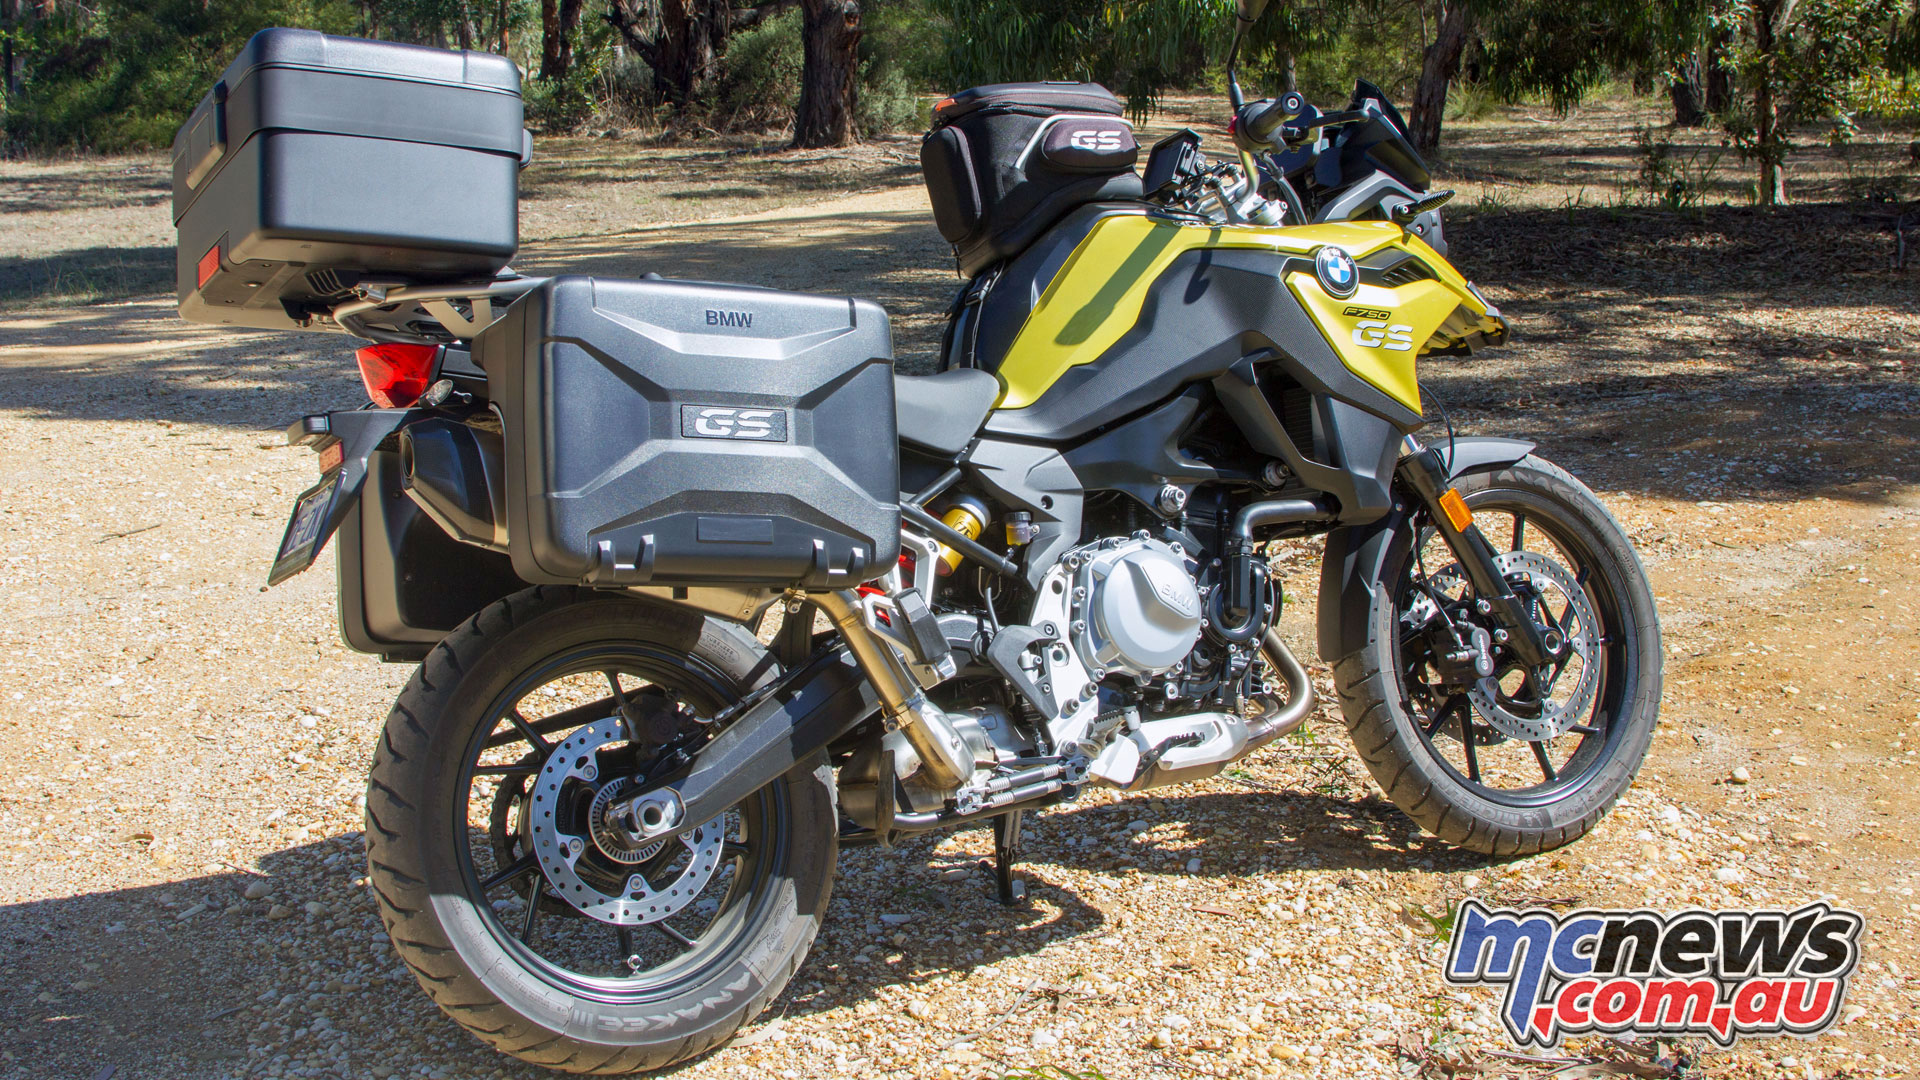 2019 bmw f 750 gs review motorcycle tests. Black Bedroom Furniture Sets. Home Design Ideas